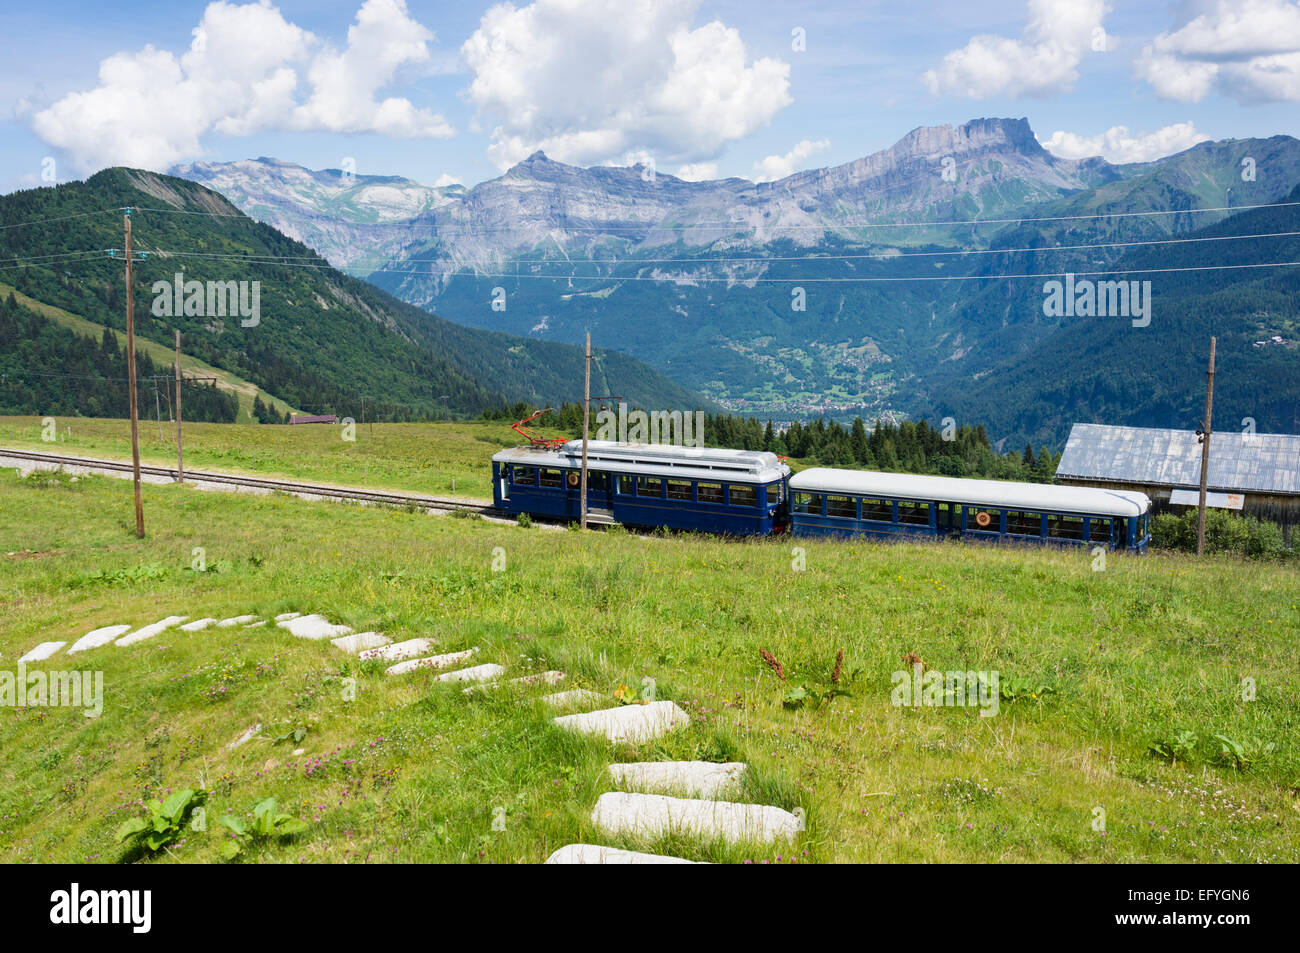 The Mont Blanc mountain cog train with Servoz village below, at Les Houches,  Bellevue, near Chamonix, French Alps, - Stock Image